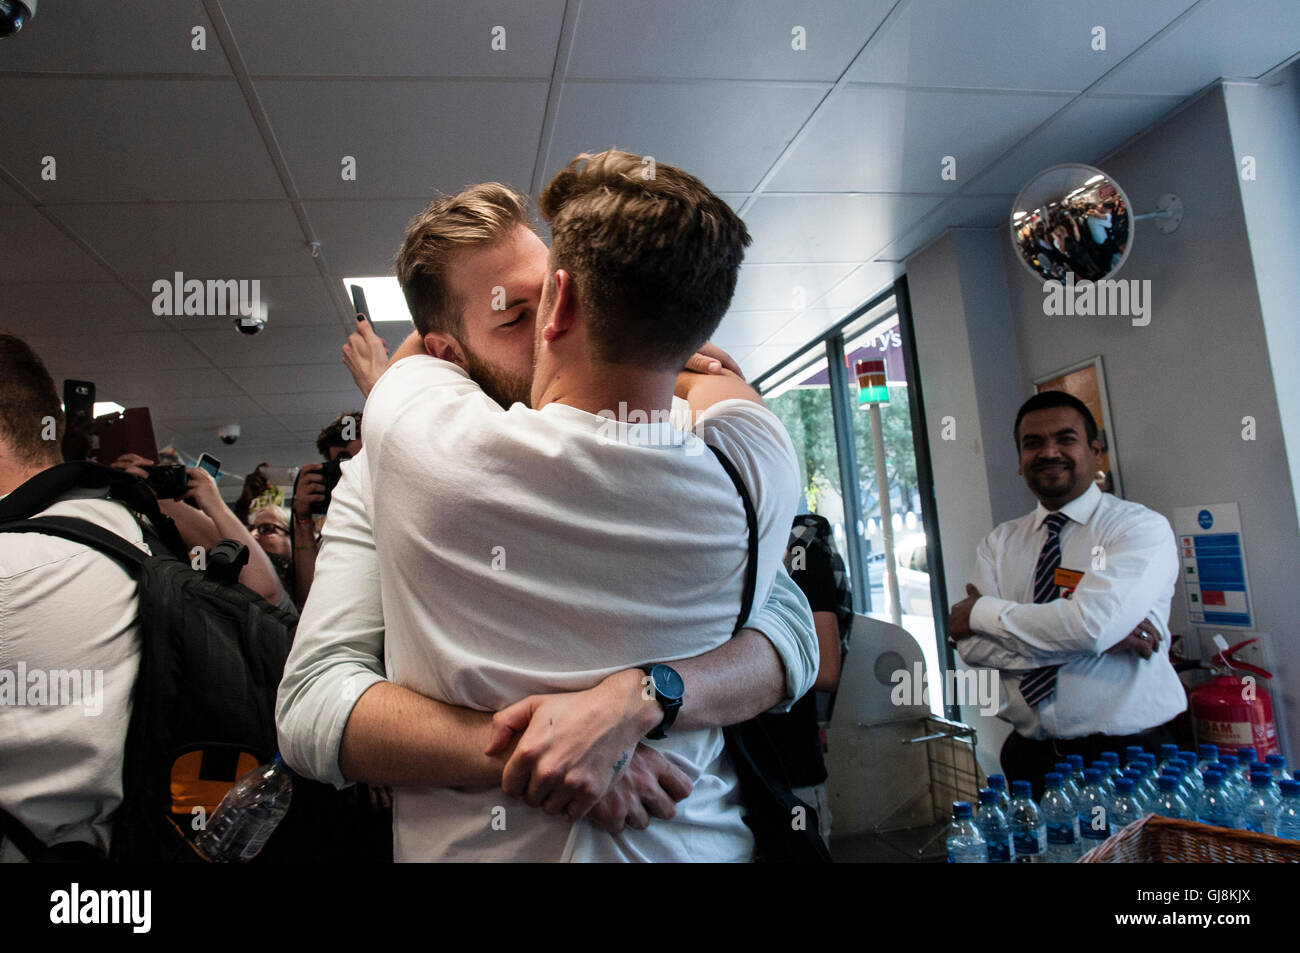 A couple kissing in a supermarket. A group of people hold a 'Big Kiss' protest for a homophobic incident - Stock Image